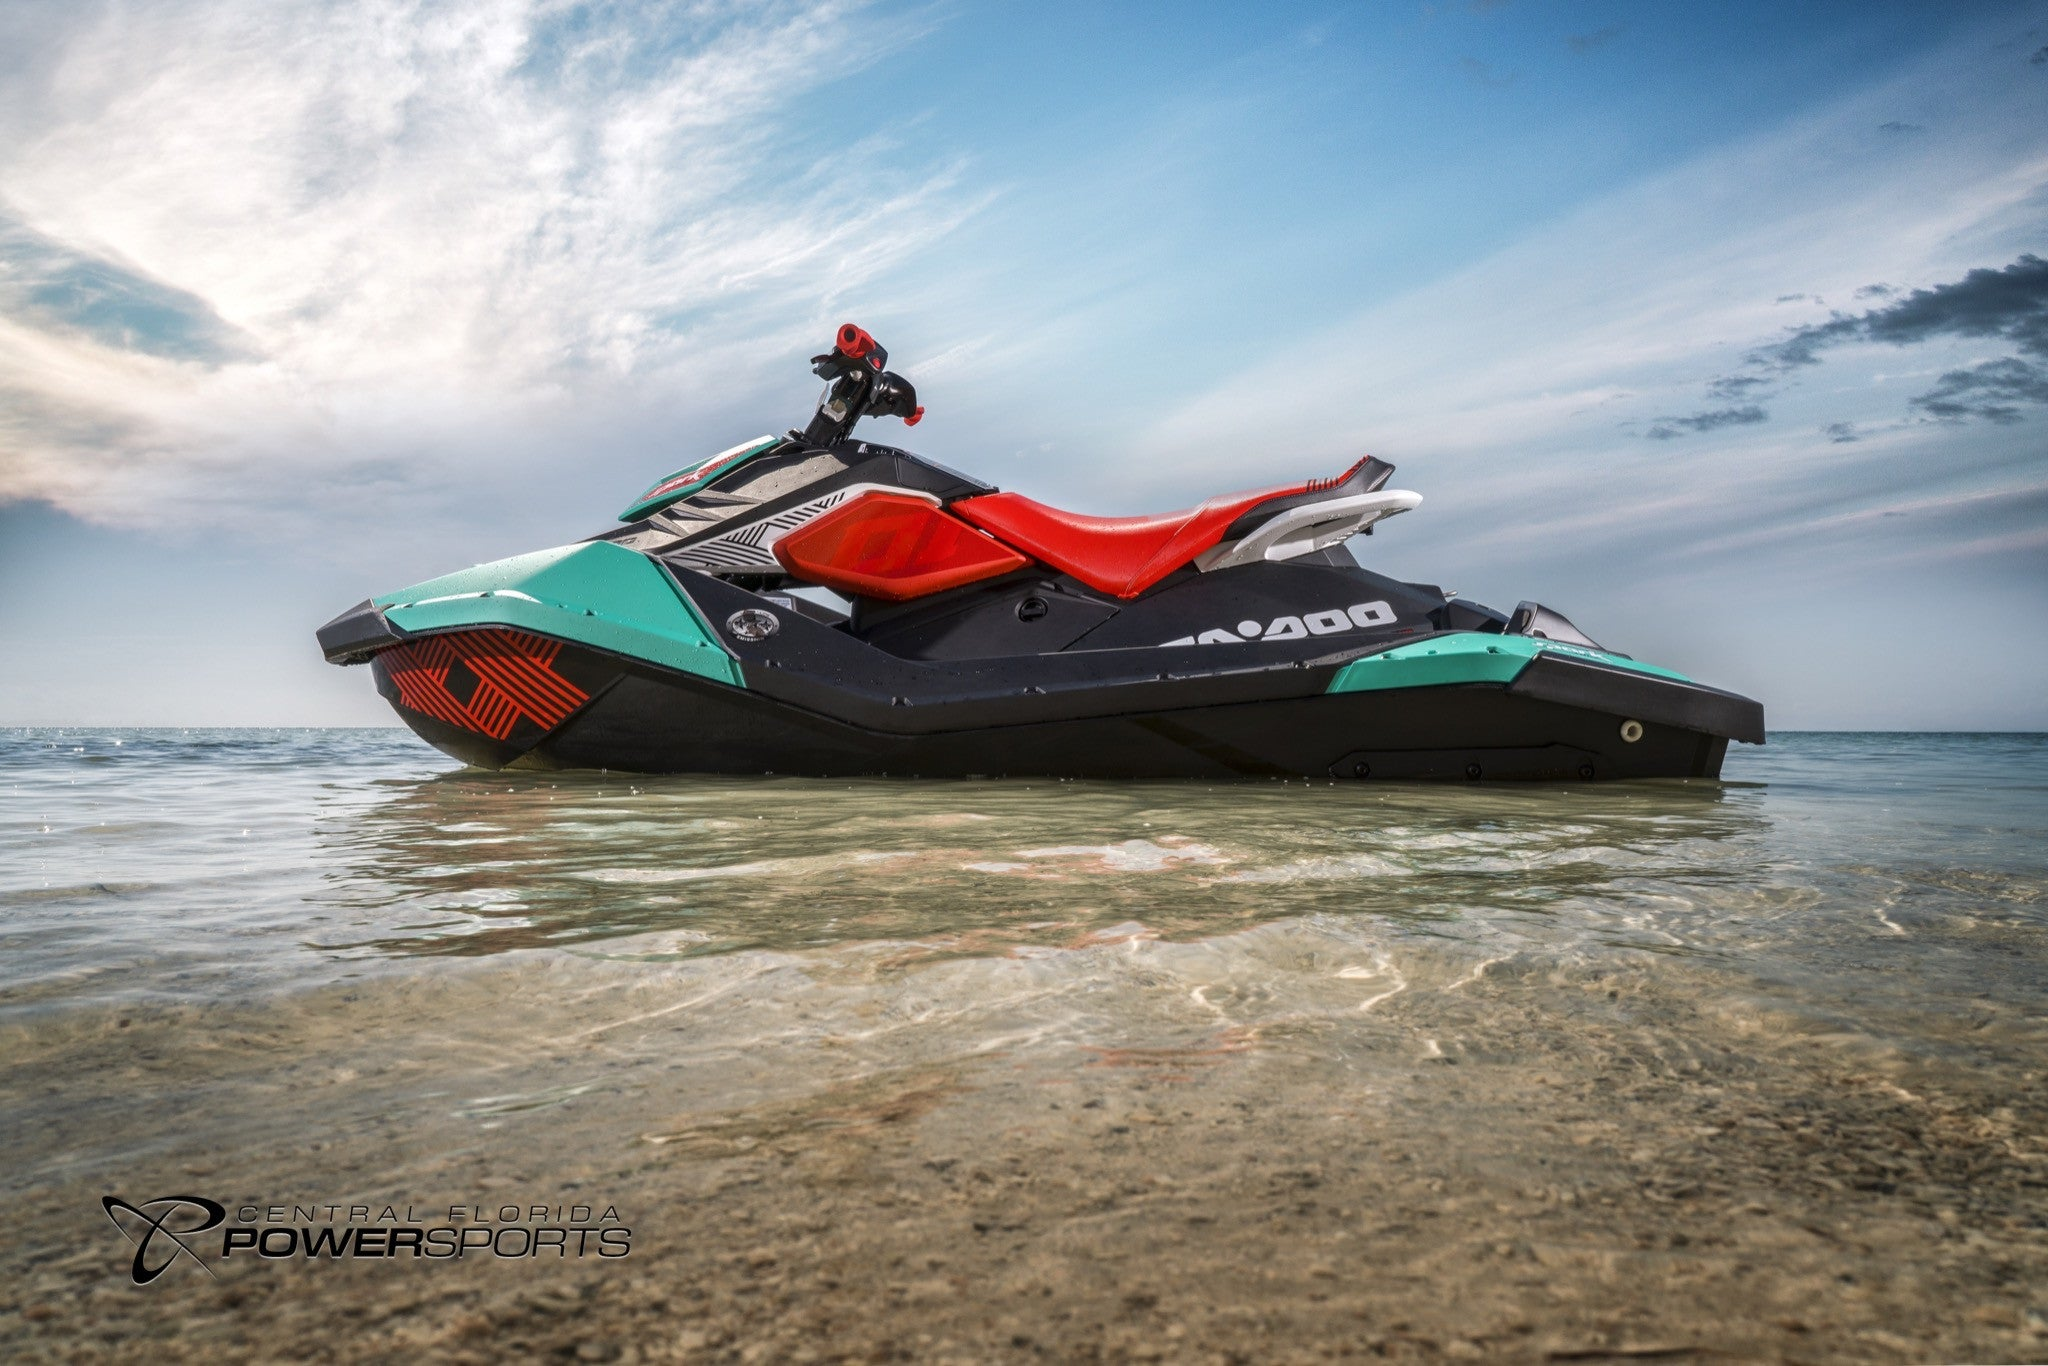 2017 sea doo spark trixx pwc for sale central florida powersports